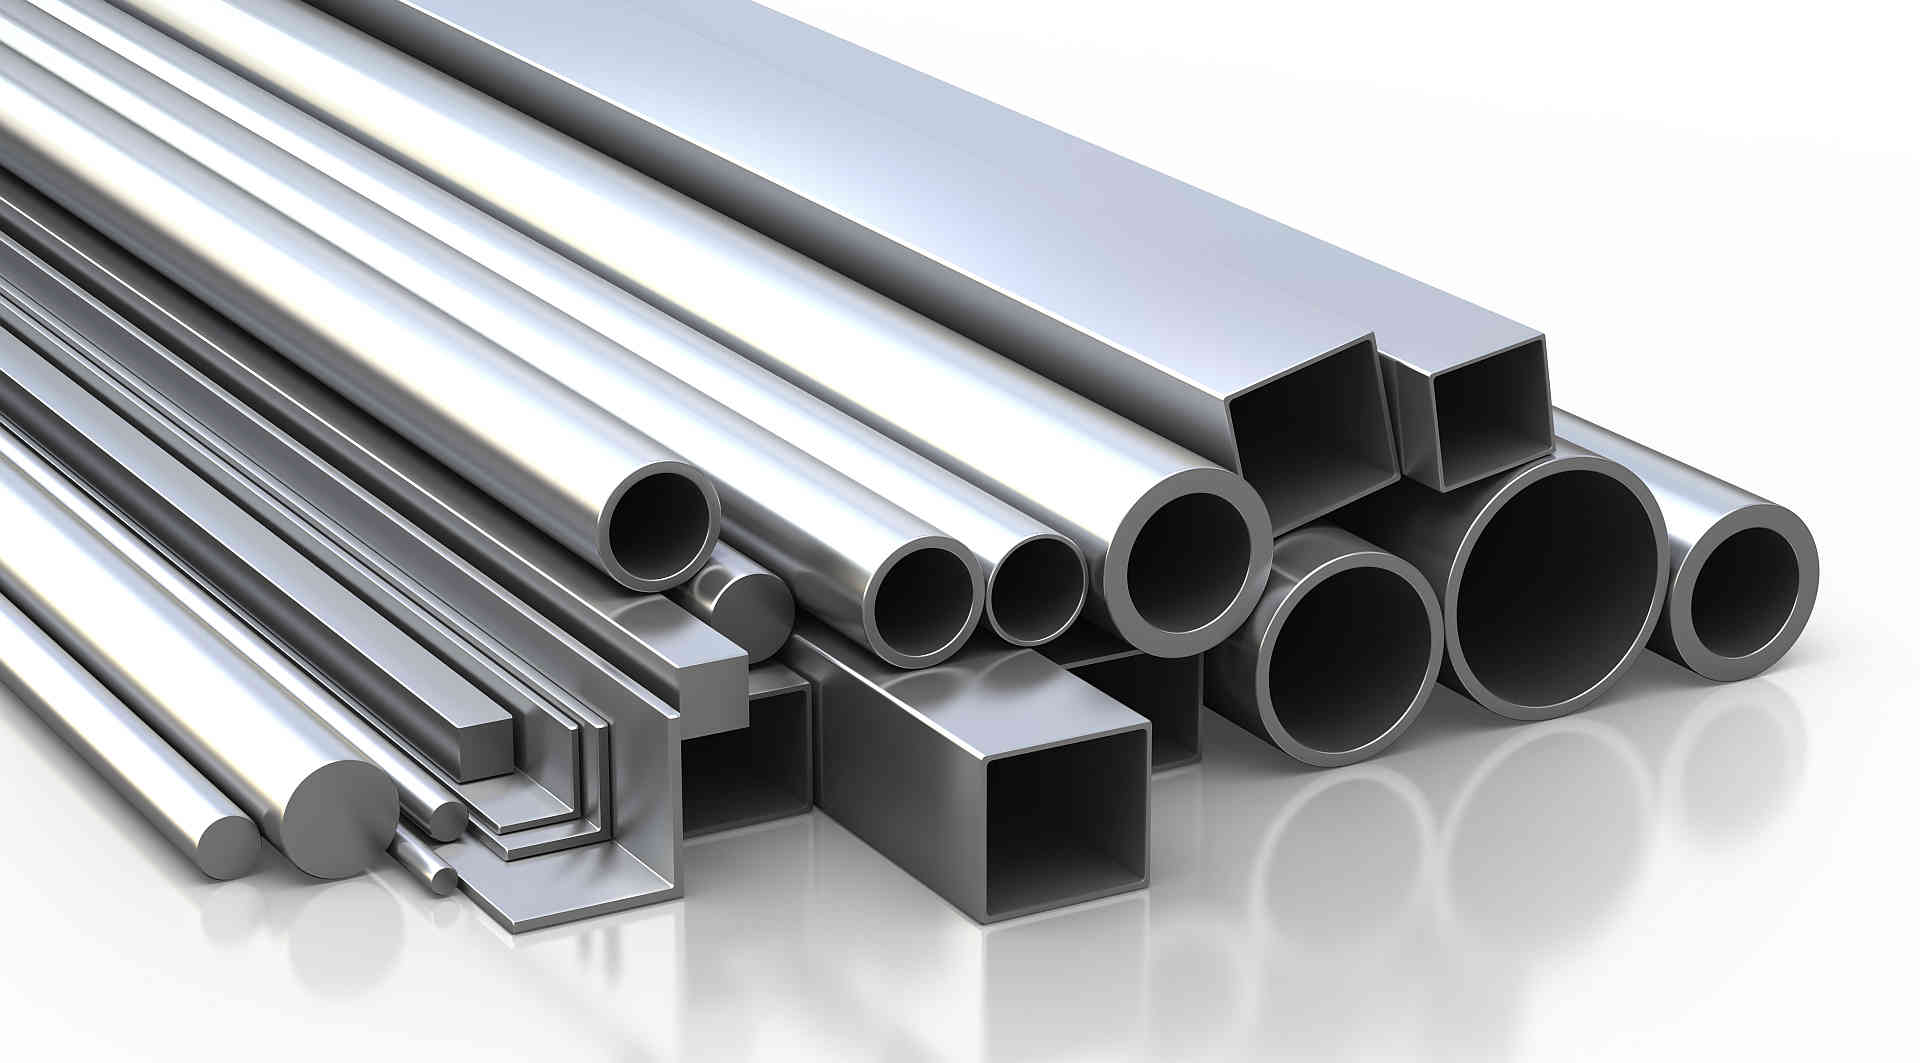 Stainless Steel Tubes, Fittings and Accessories